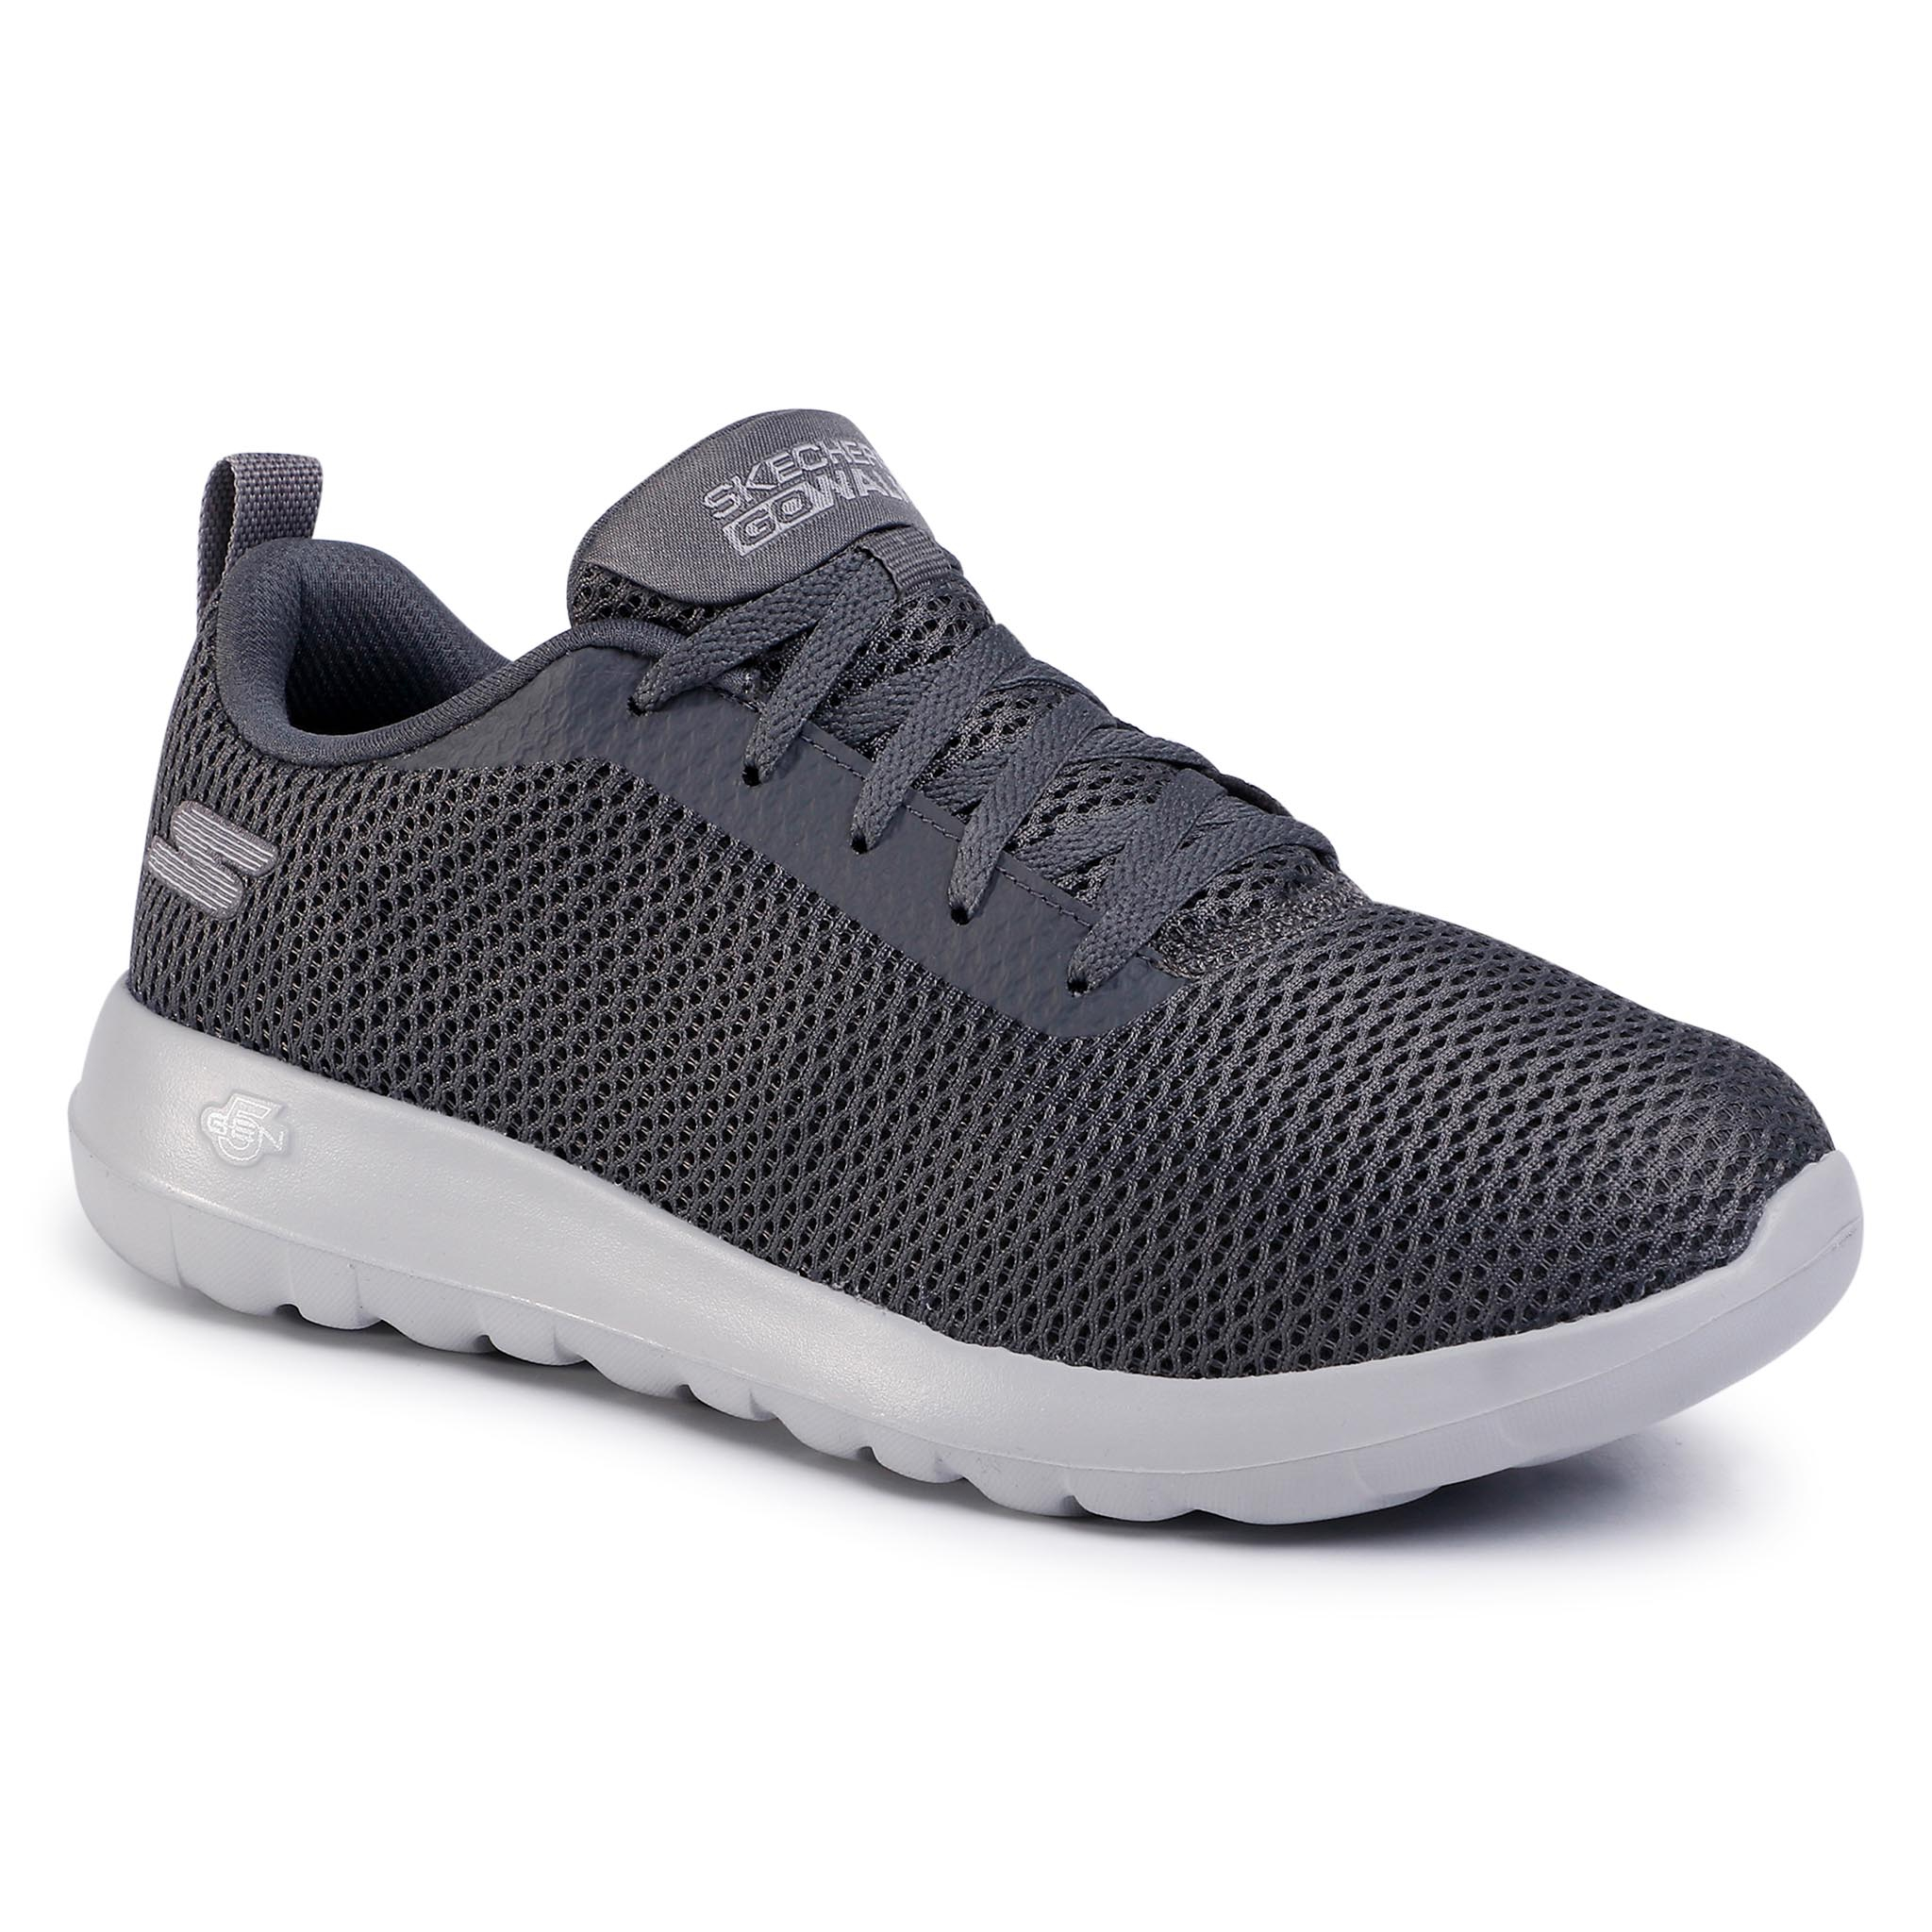 Sneakers SKECHERS - Effort 54601/CHAR Charcoal